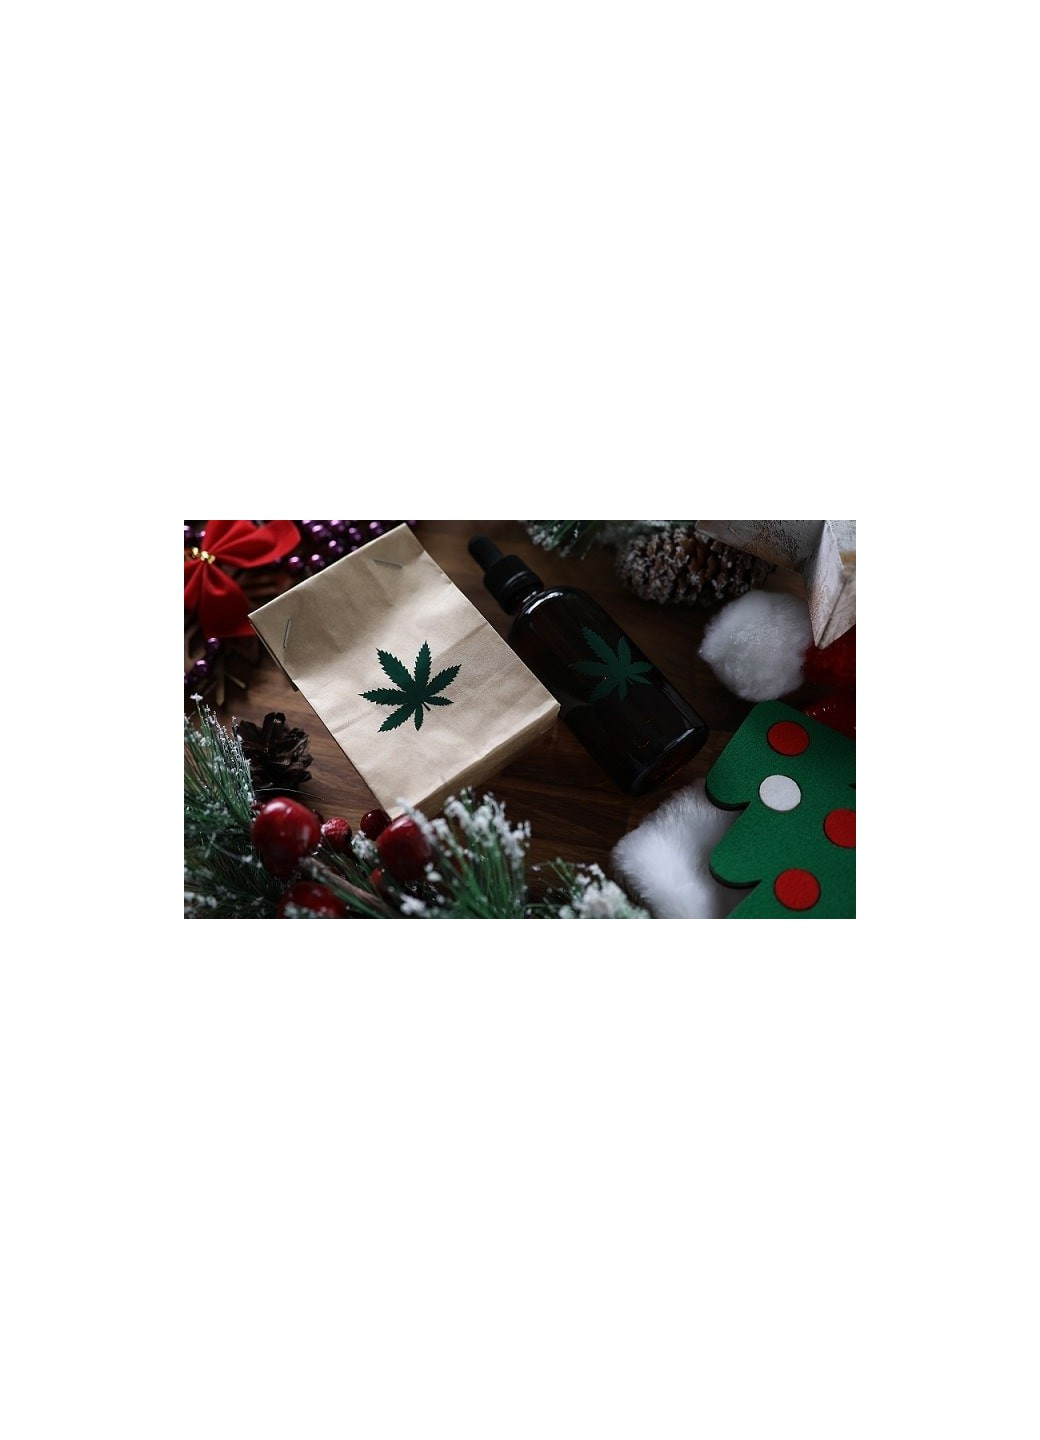 Shop our CBD for Christmas now!